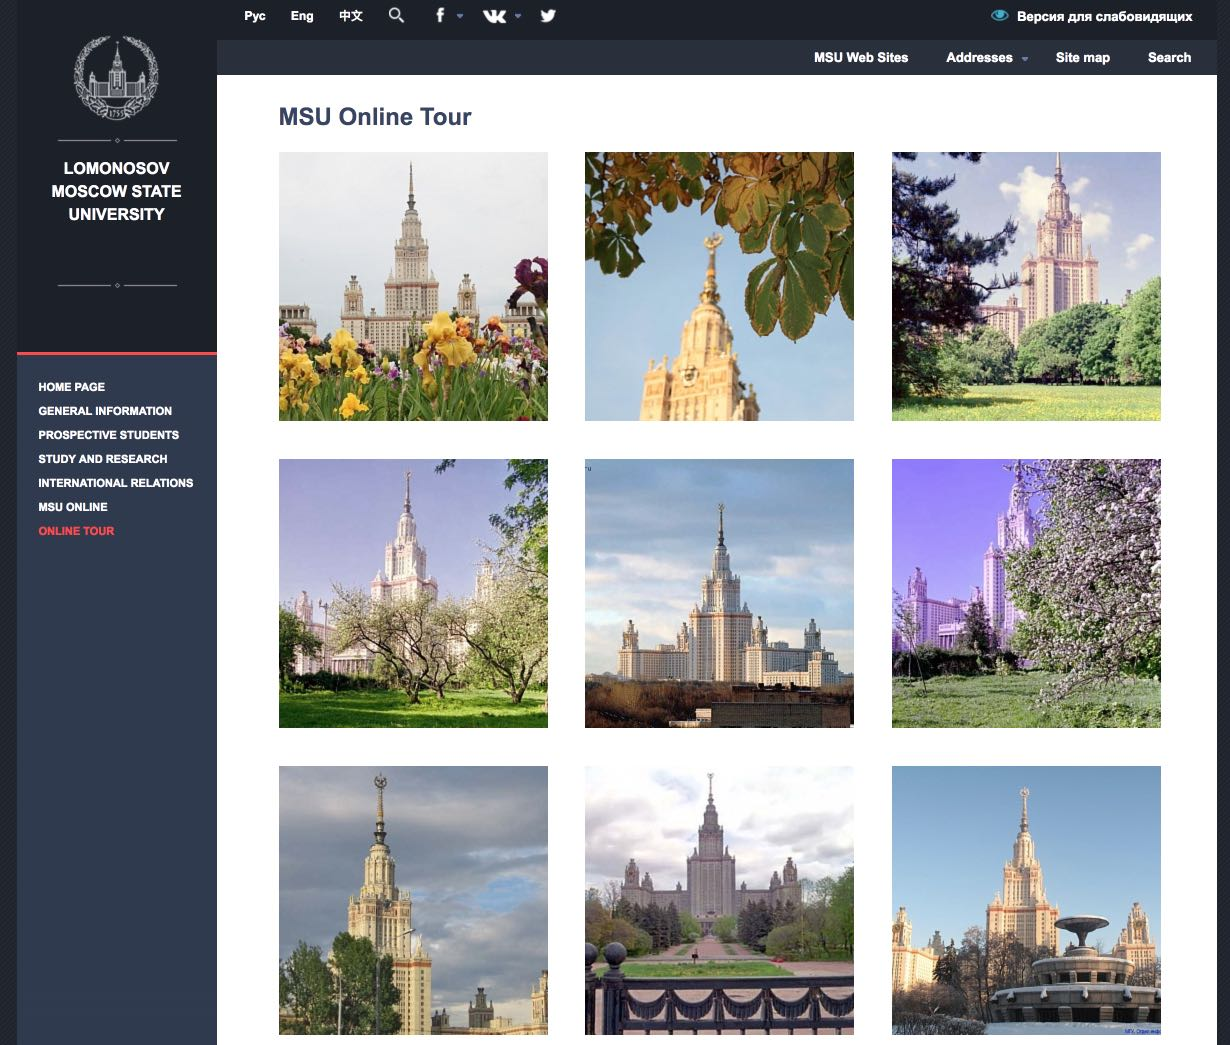 Moscow State University Website